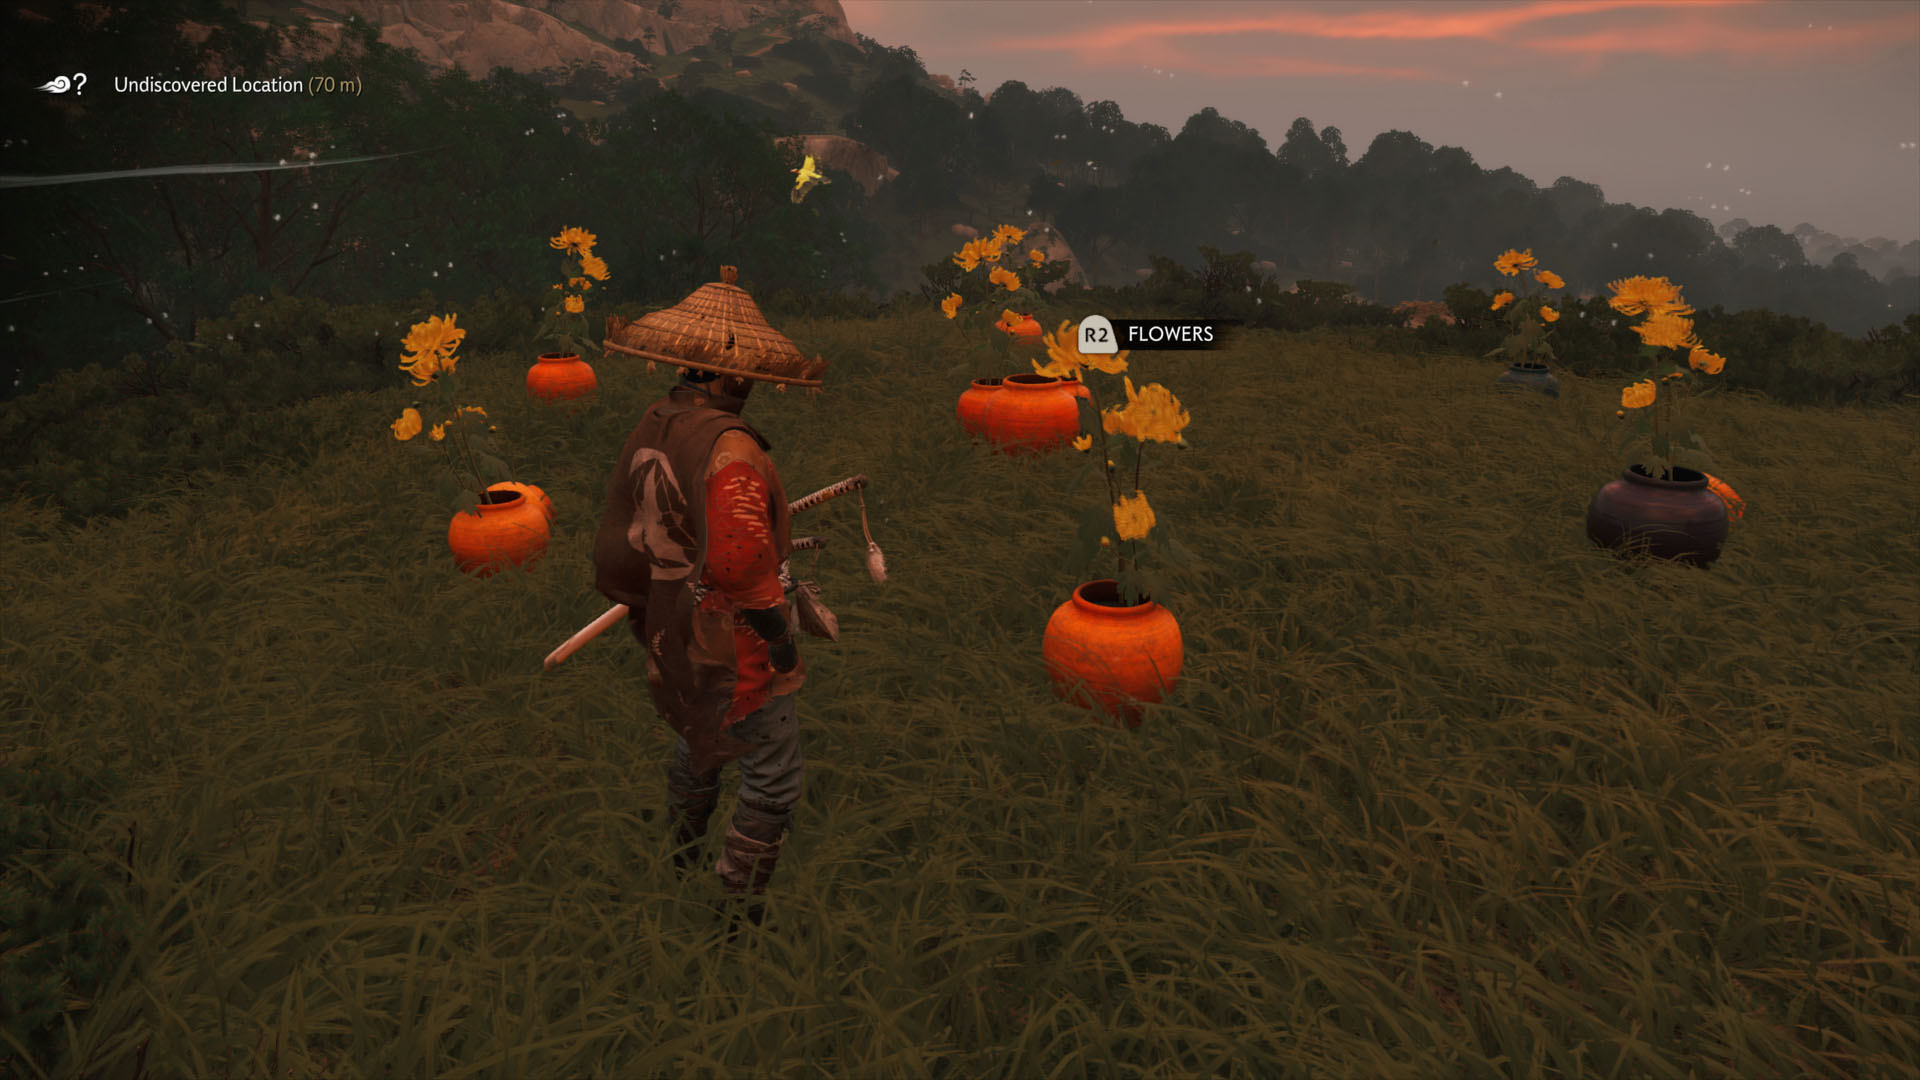 how to farm flowers in Ghost of Tsushima